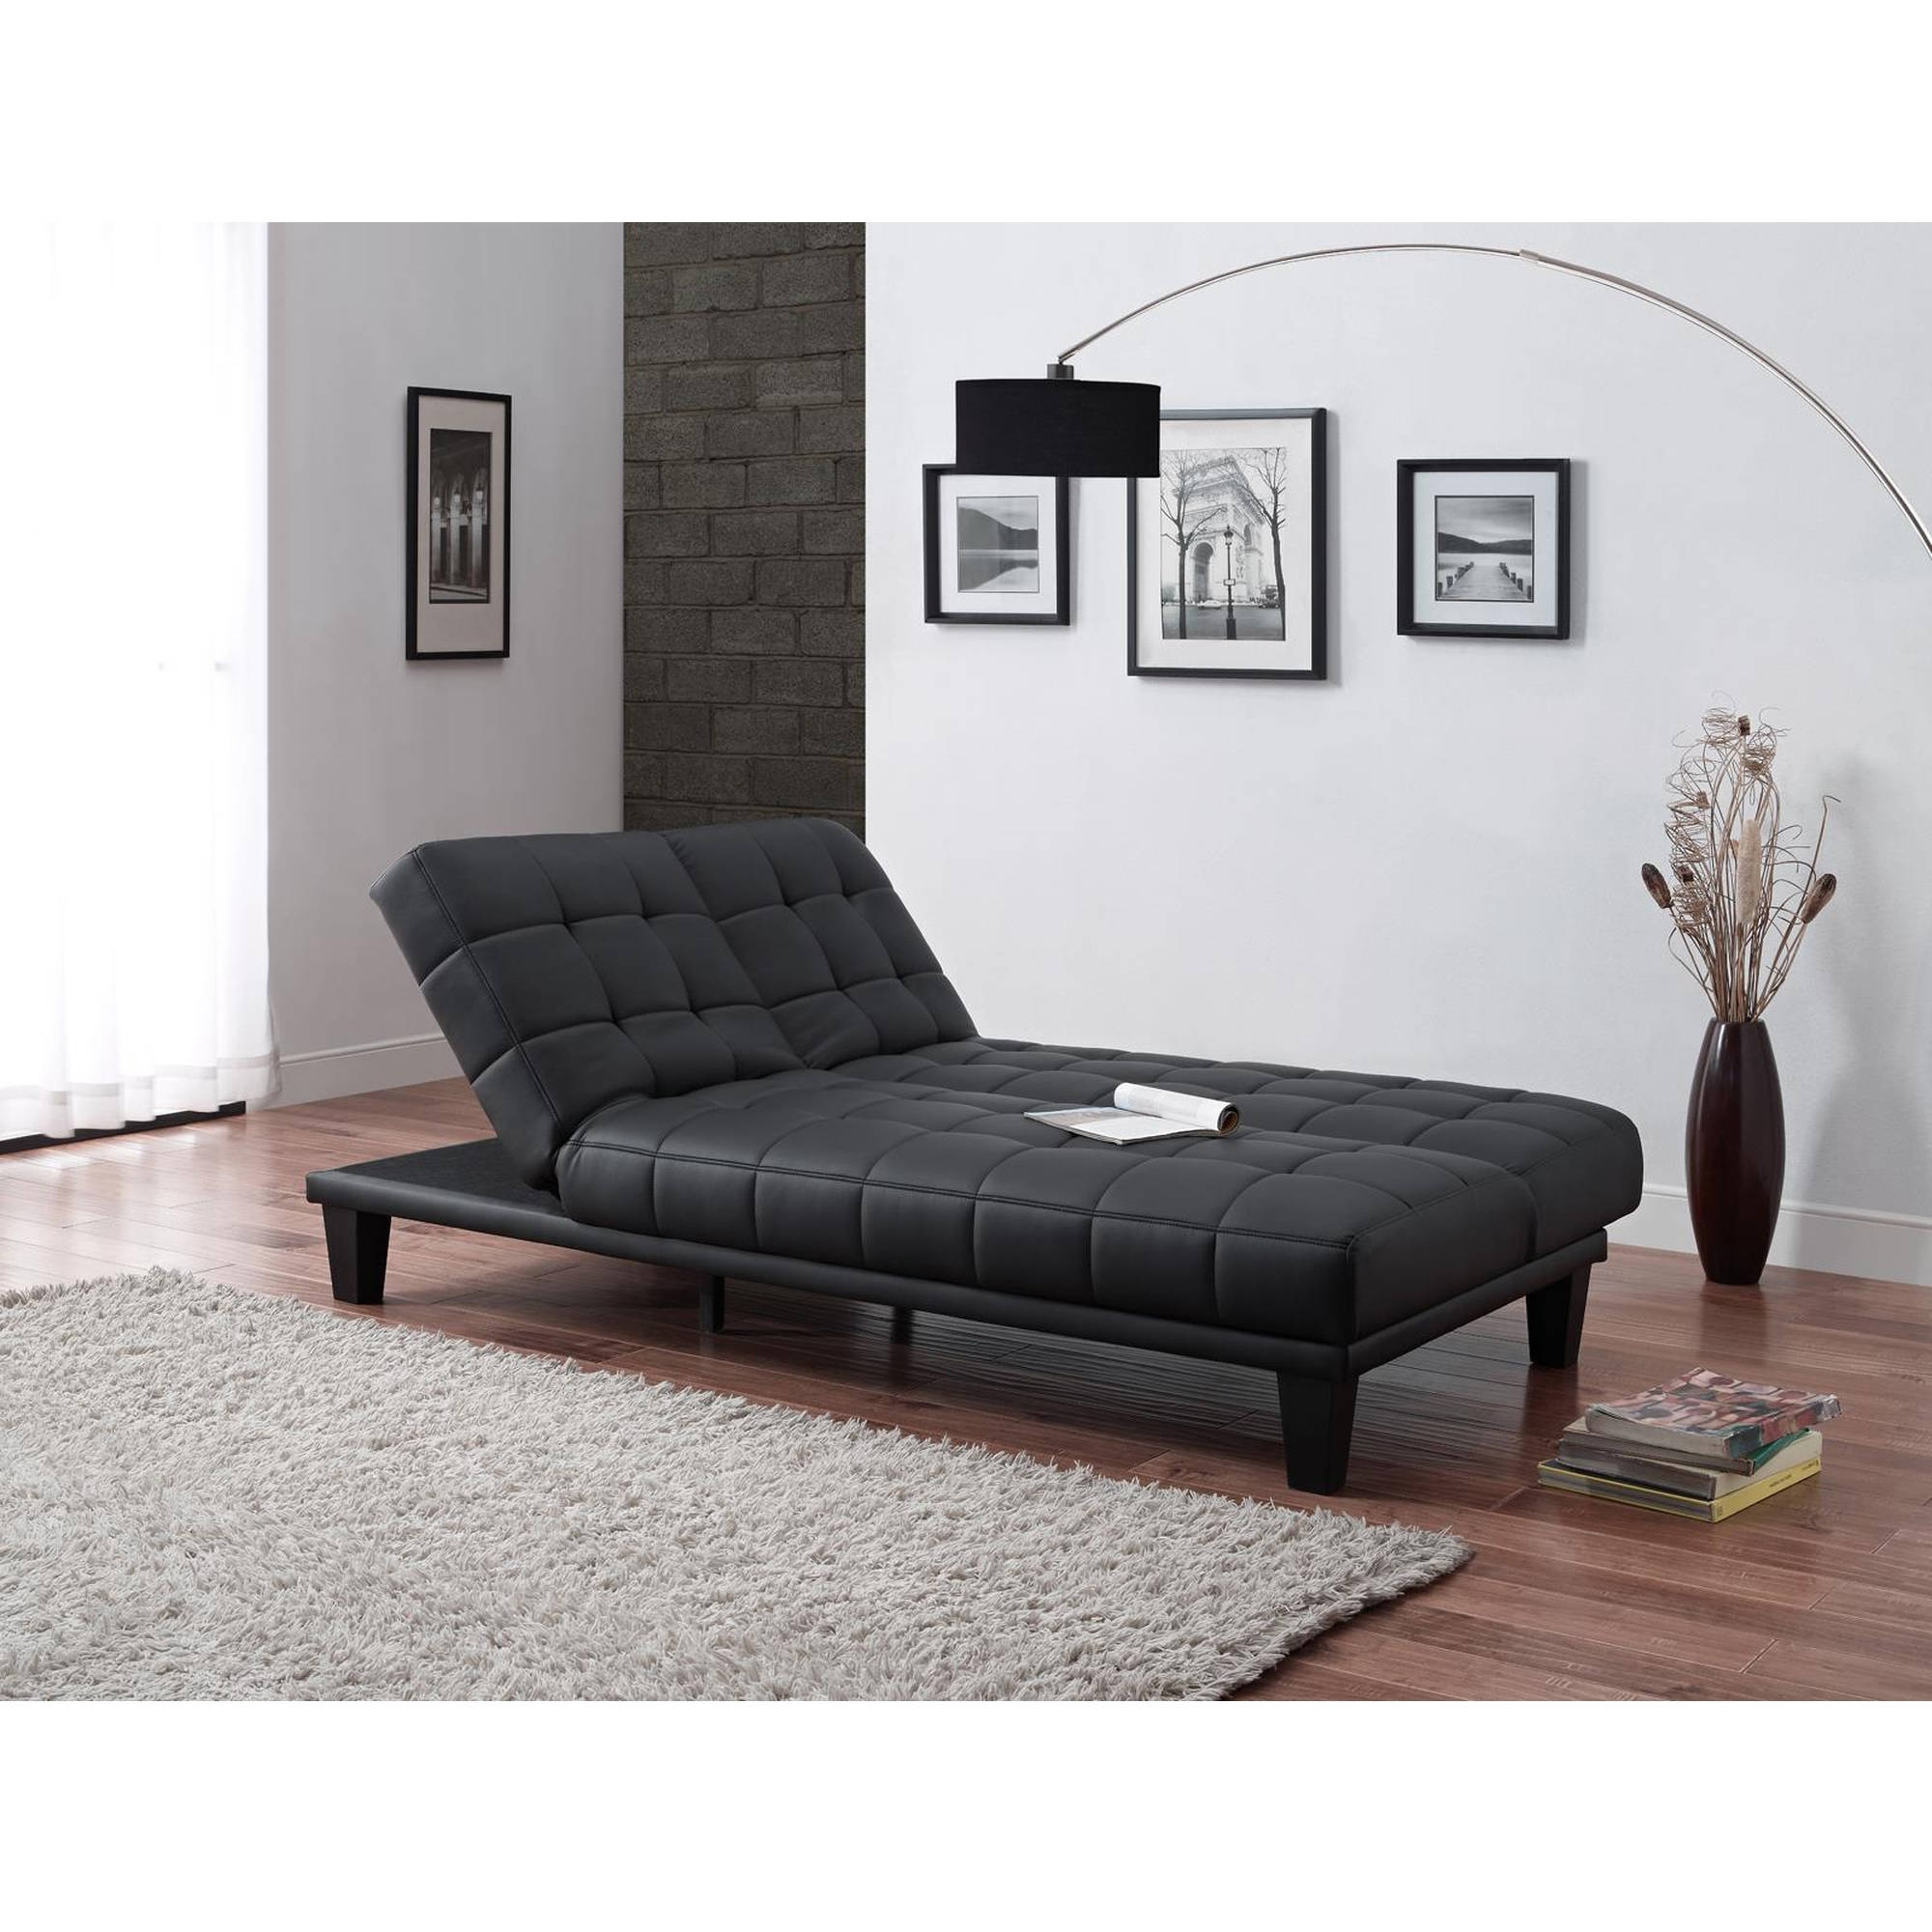 Metropolitan Futon Lounger, Multiple Colors – Walmart With 2017 Futons With Chaise Lounge (View 5 of 15)